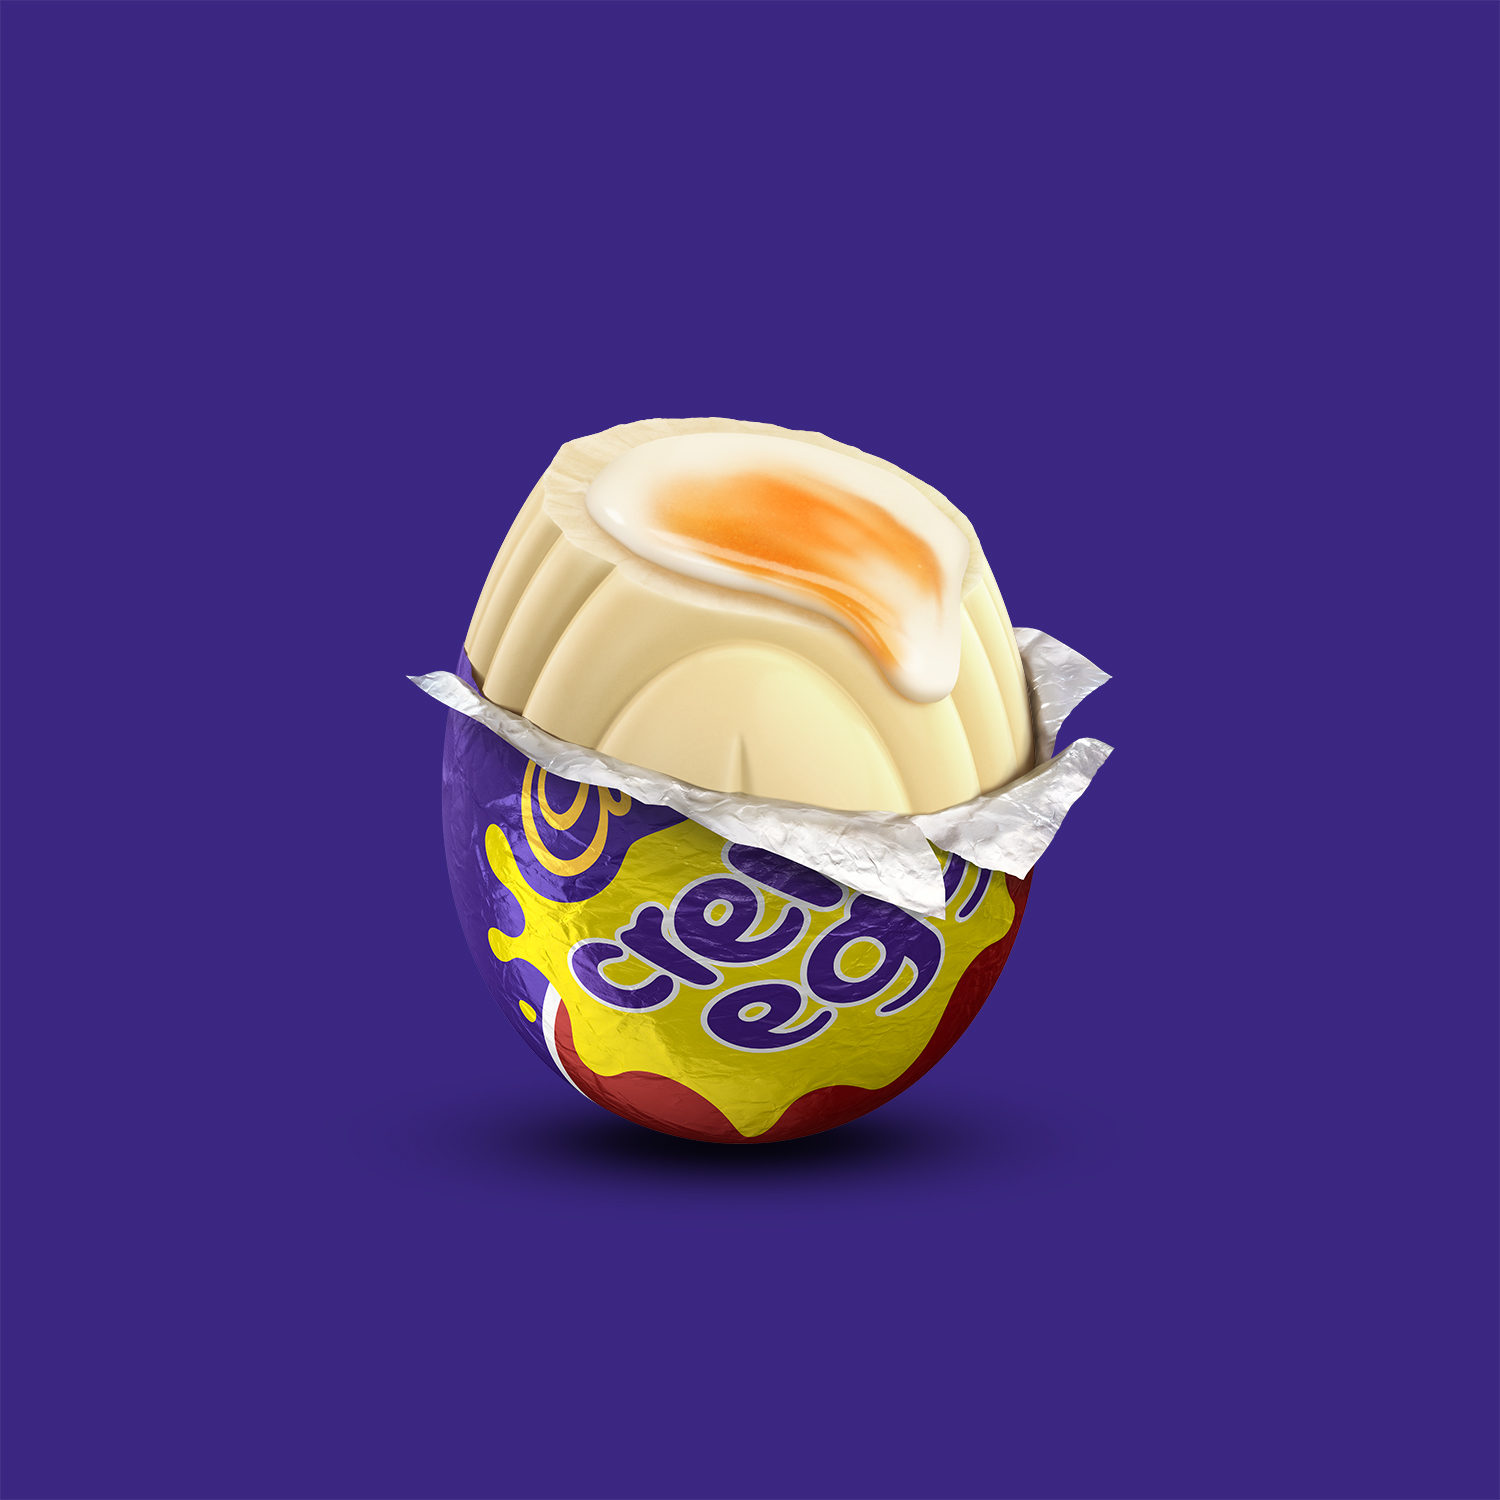 A white Cadbury Creme Egg